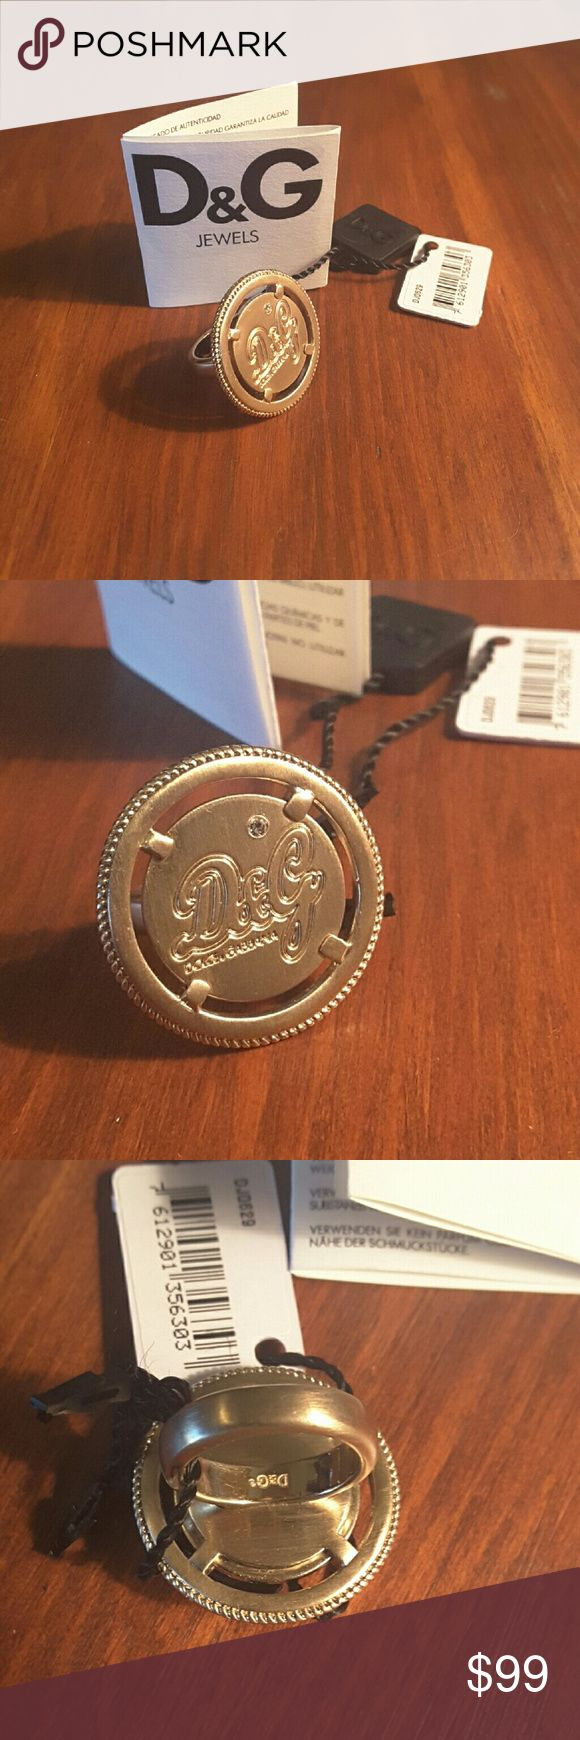 D&G Gioielli token anello Moneta ring size 7 D&G Gioielli gold token anello Moneta ip oro (token money ring in gold) ring size 7  Kind of dark gold color w D&G logo w single gem above  Certificate  & gift box included, NWT DJ0629  Make an offer today! D&G Jewelry Rings